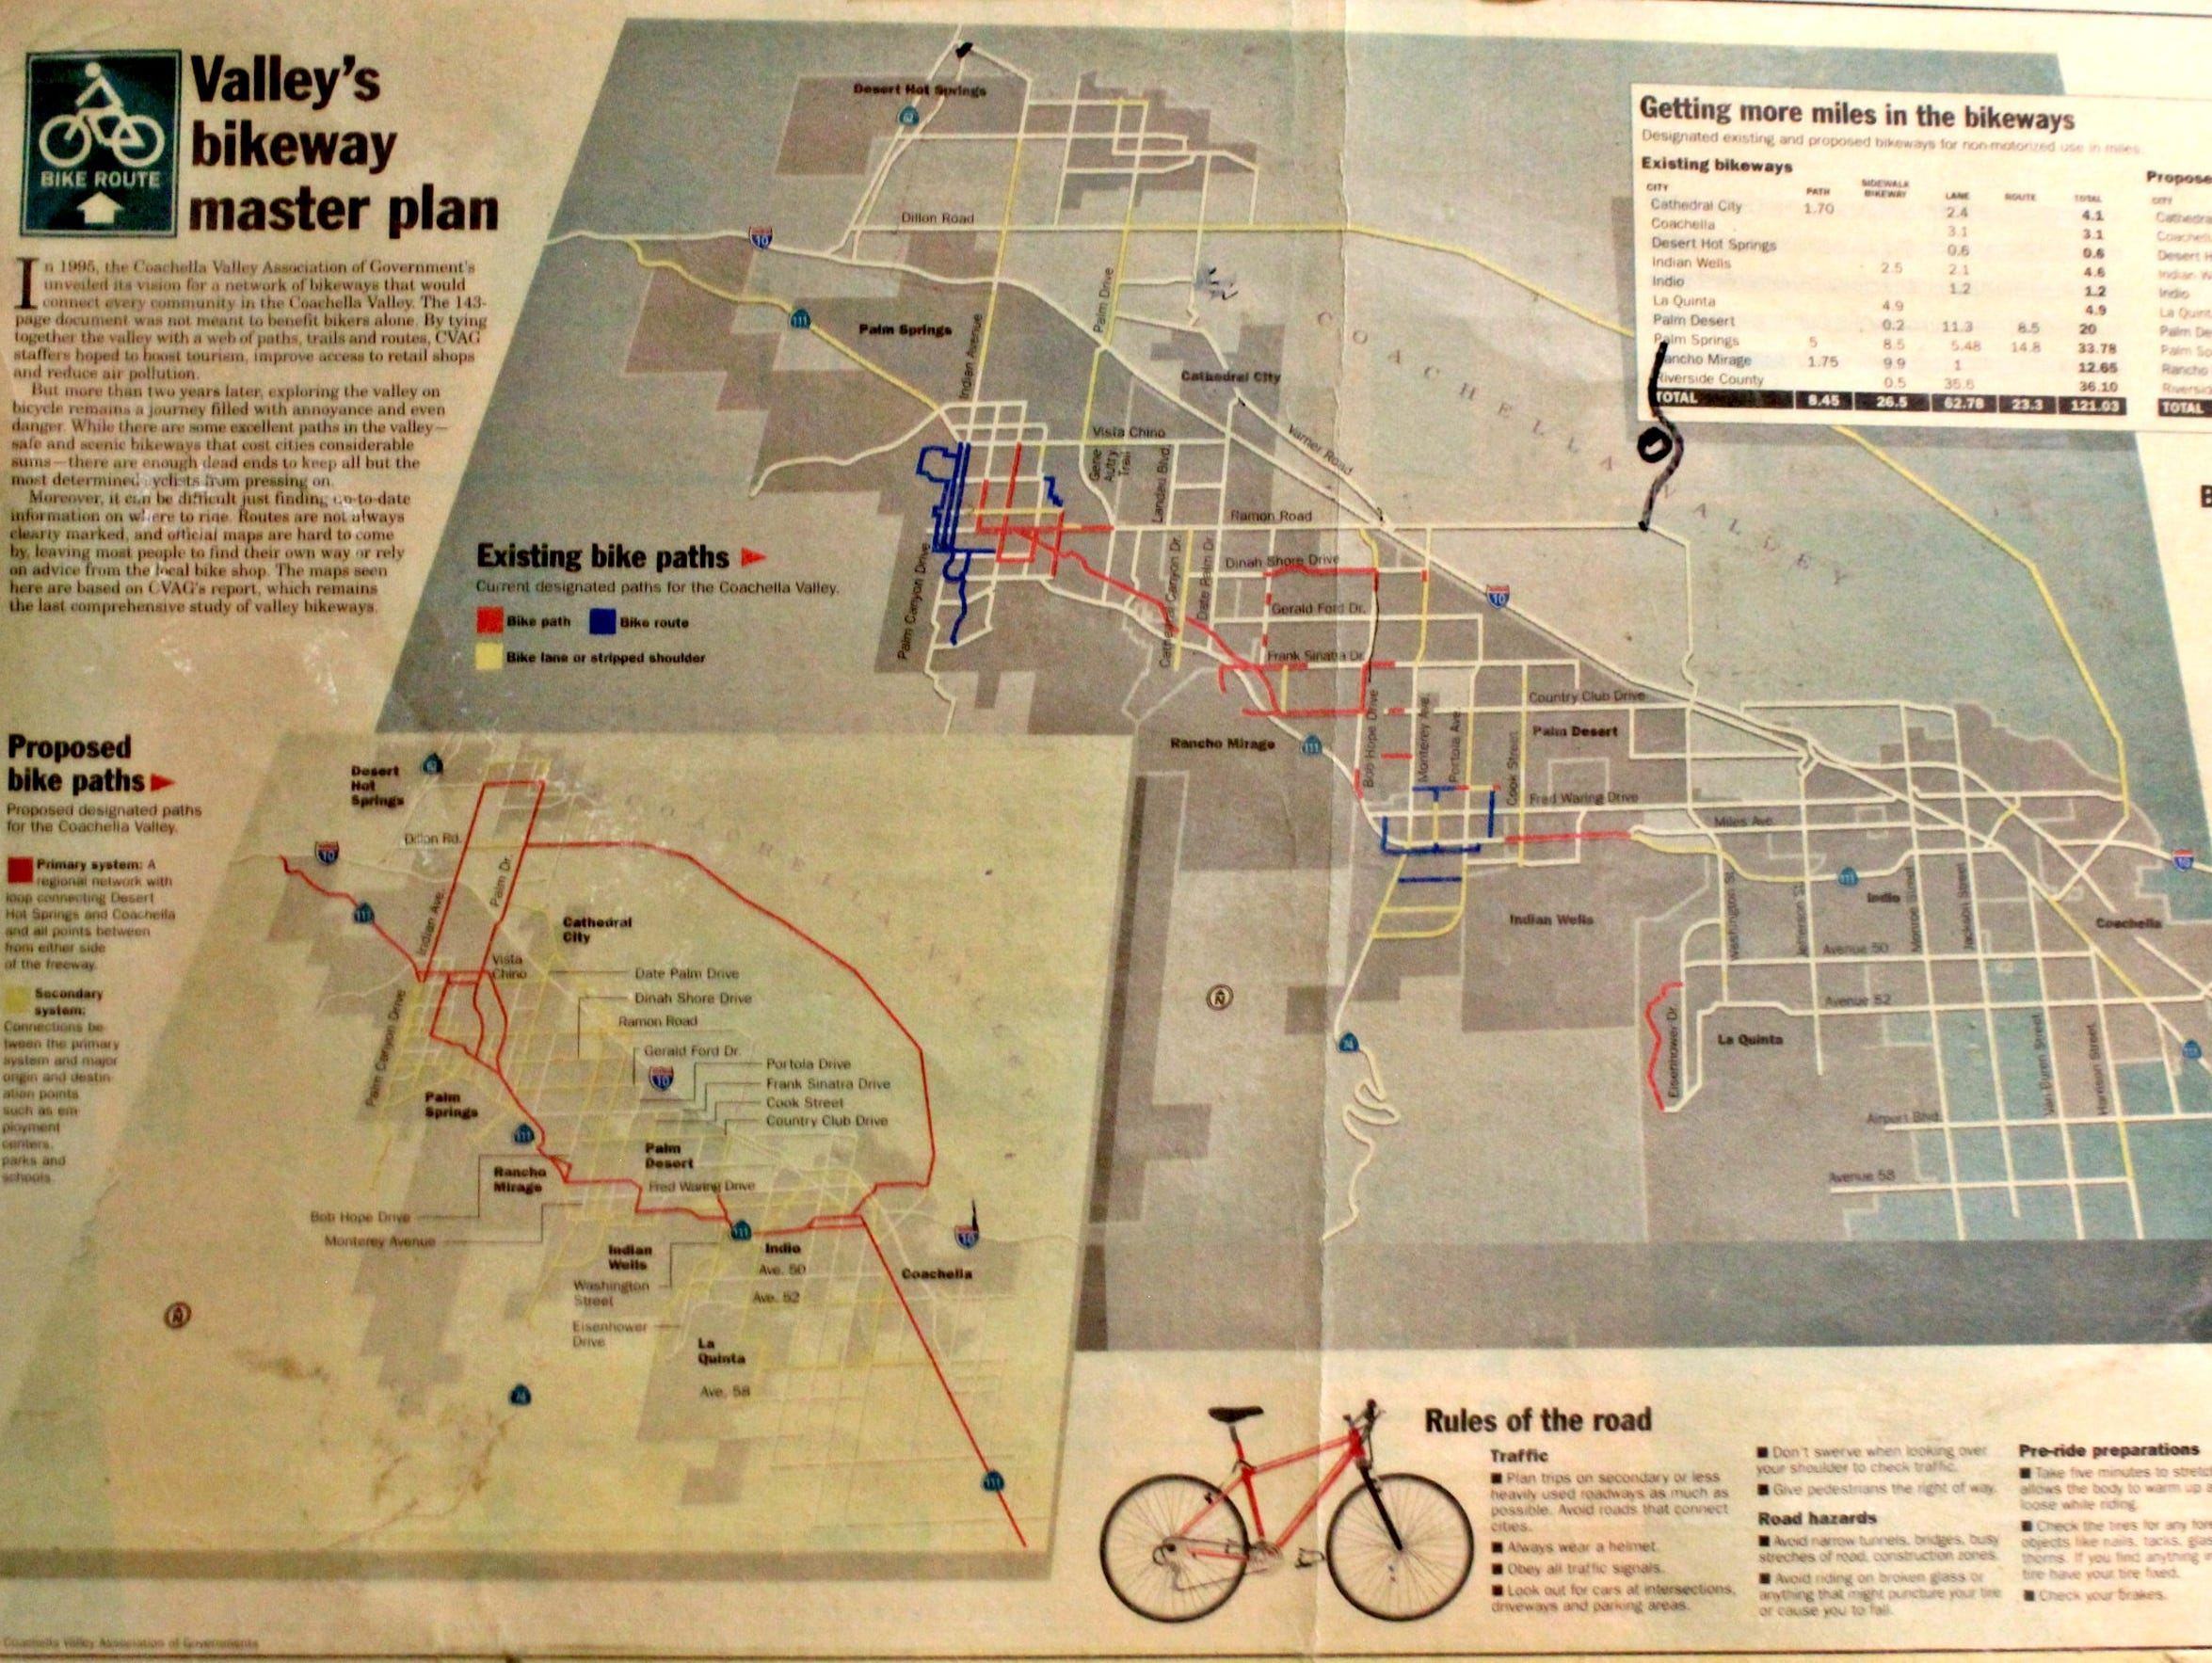 A map of a valley-wide bicycle loop that was proposed